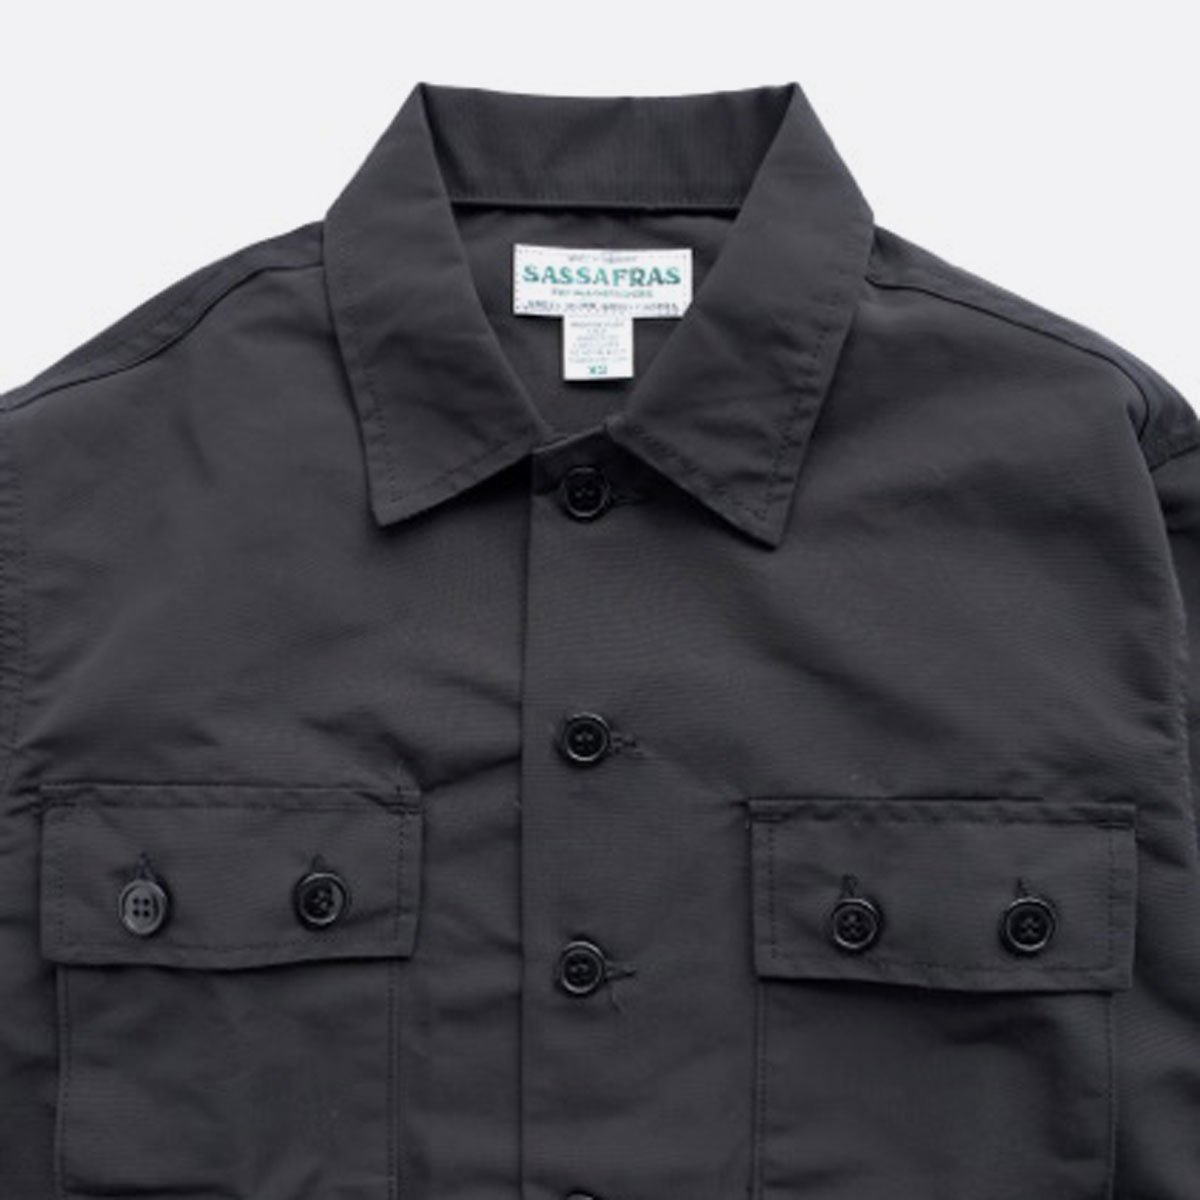 SASSAFRAS G.D.U. JACKET MEMORY OXFORD (BLACK)4